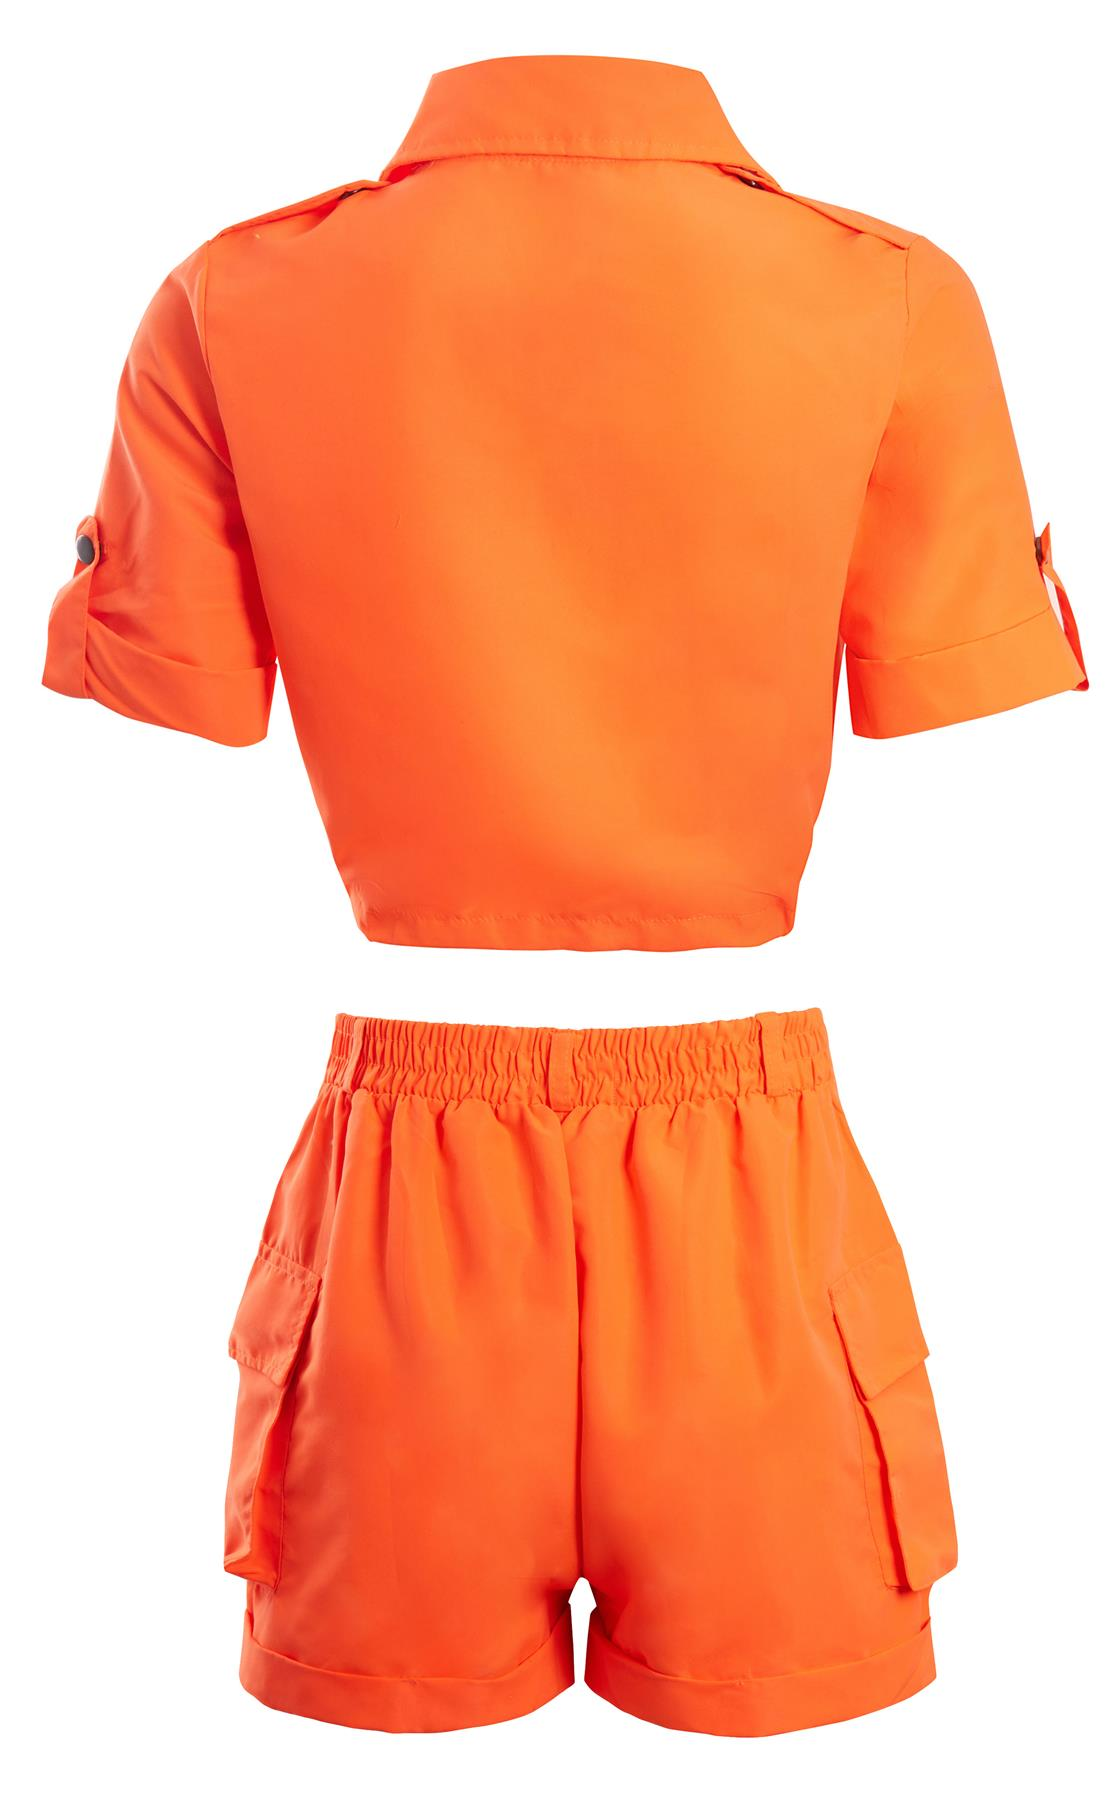 Shelikes-Womens-Cargo-Crop-Top-Shorts-Co-ord-Festival-Tie-Front-Pocket-Set thumbnail 19